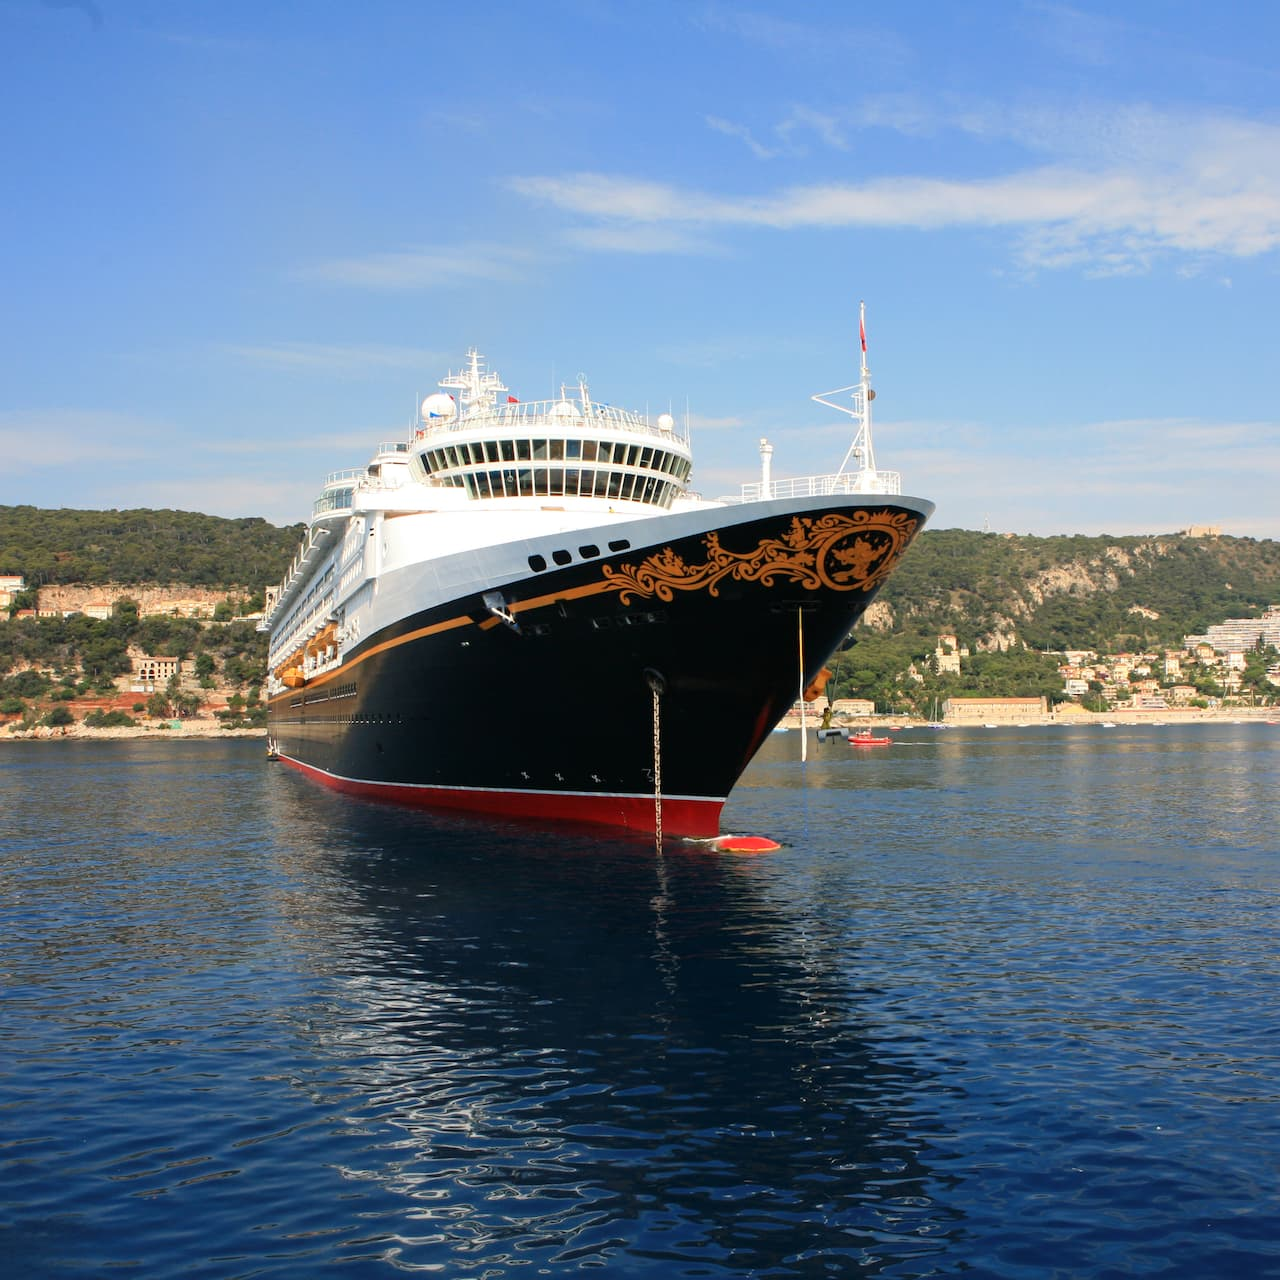 The Disney Cruise Line cruise ship, Disney Magic, anchored off shore